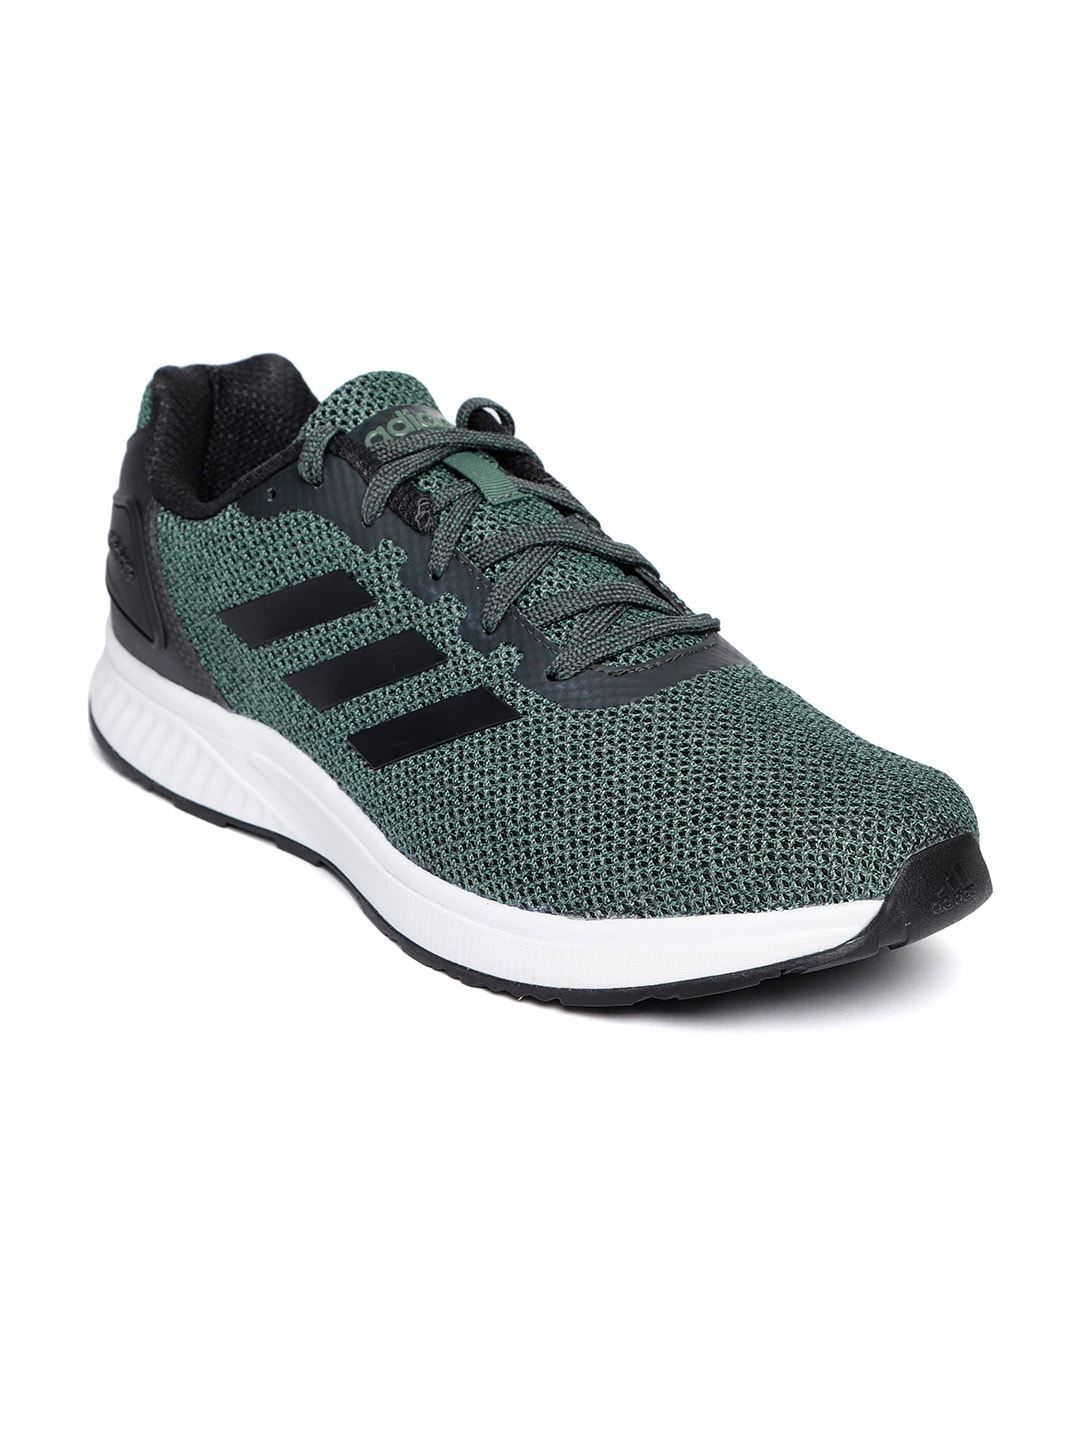 d0feb82ee9dc Adidas Running Shoes Men Sports - Buy Adidas Running Shoes Men Sports  online in India